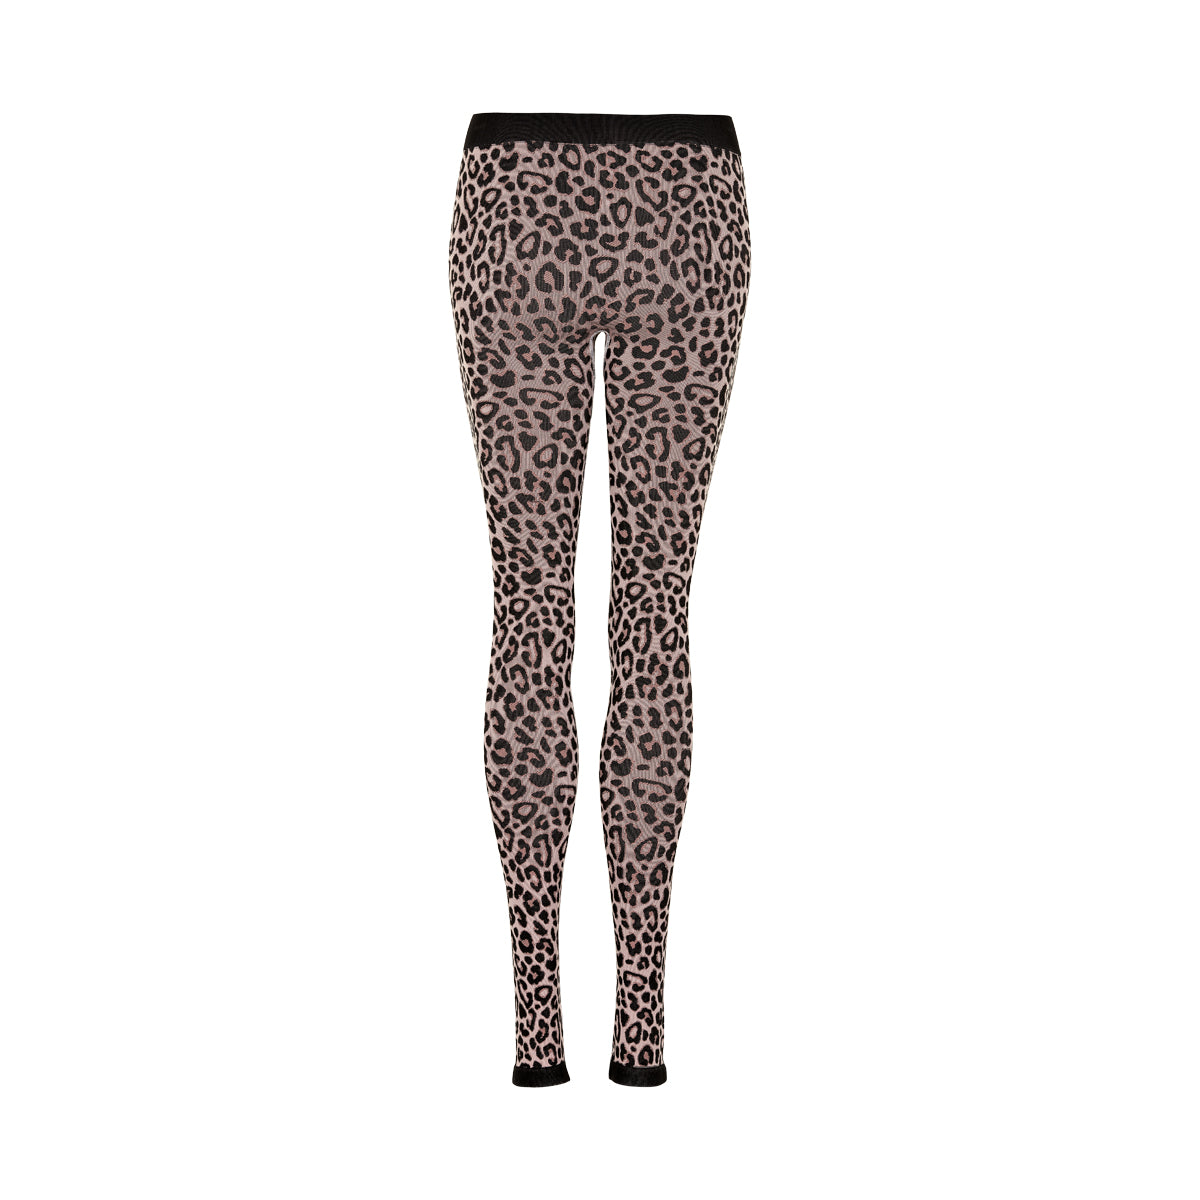 PURE Cheetah leggings w-THE NEW PURE-THE NEW PURE